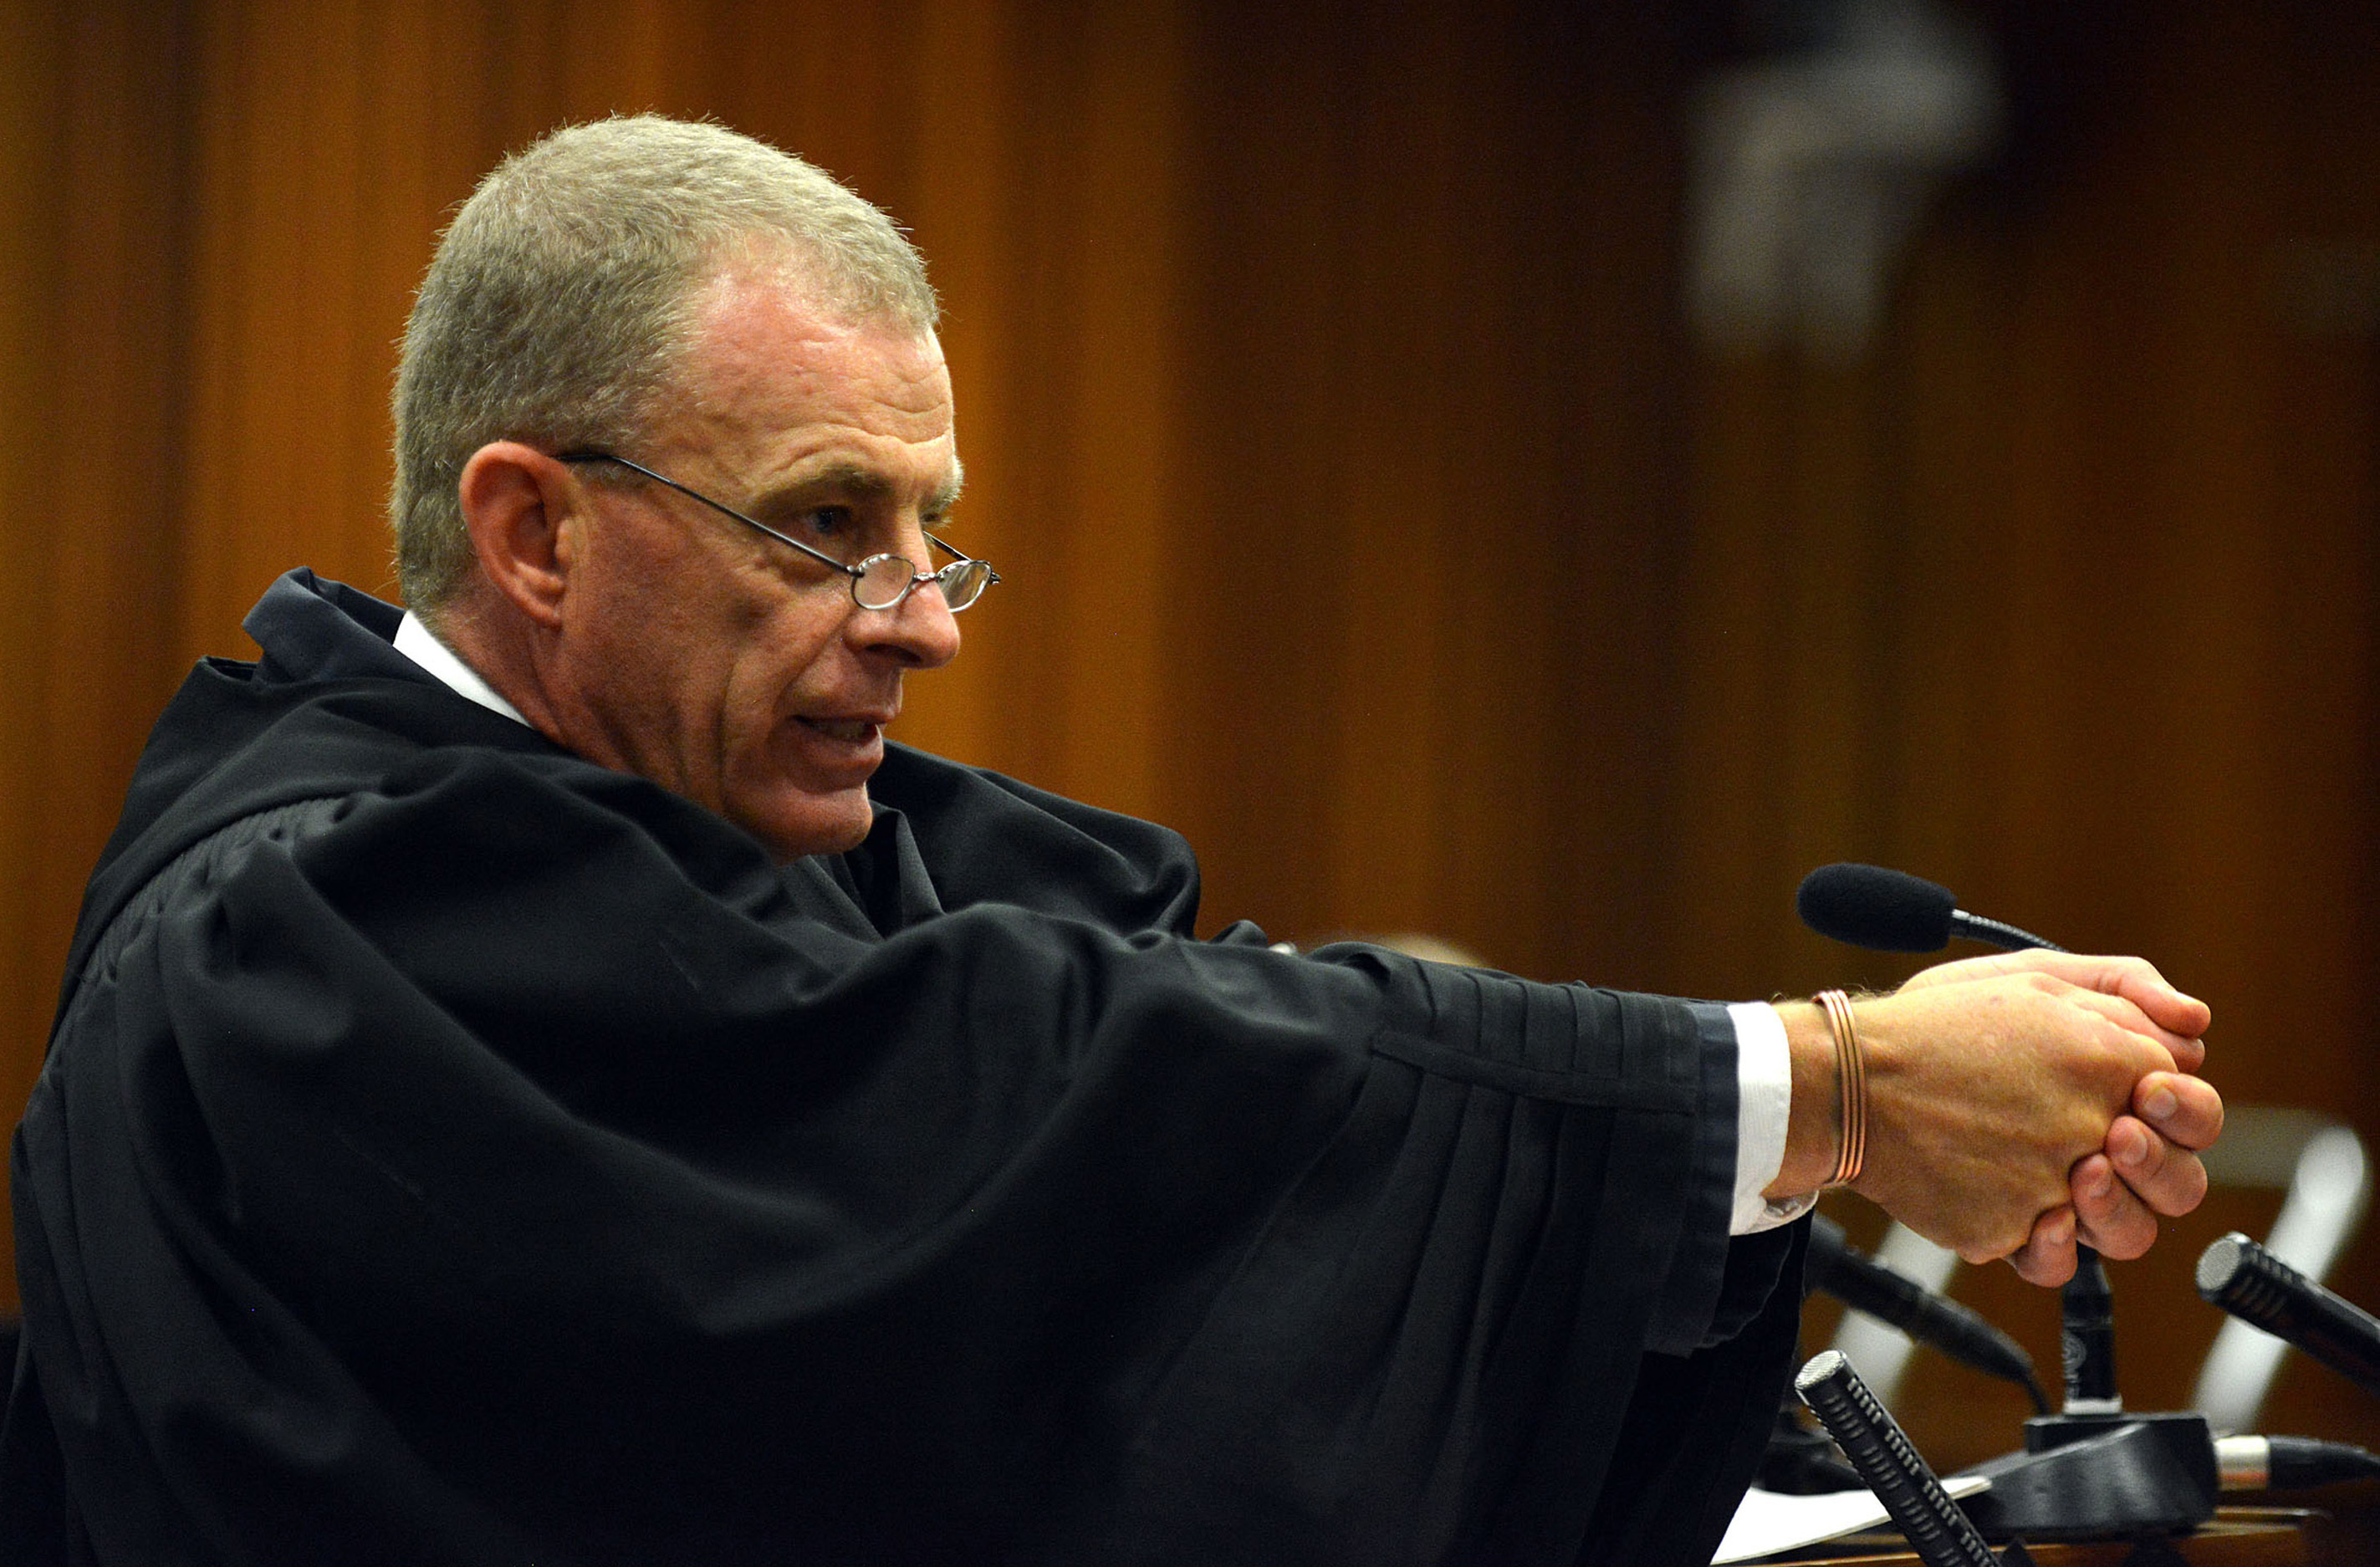 S&M: Pistorius – What the hell, but more importantly, why?